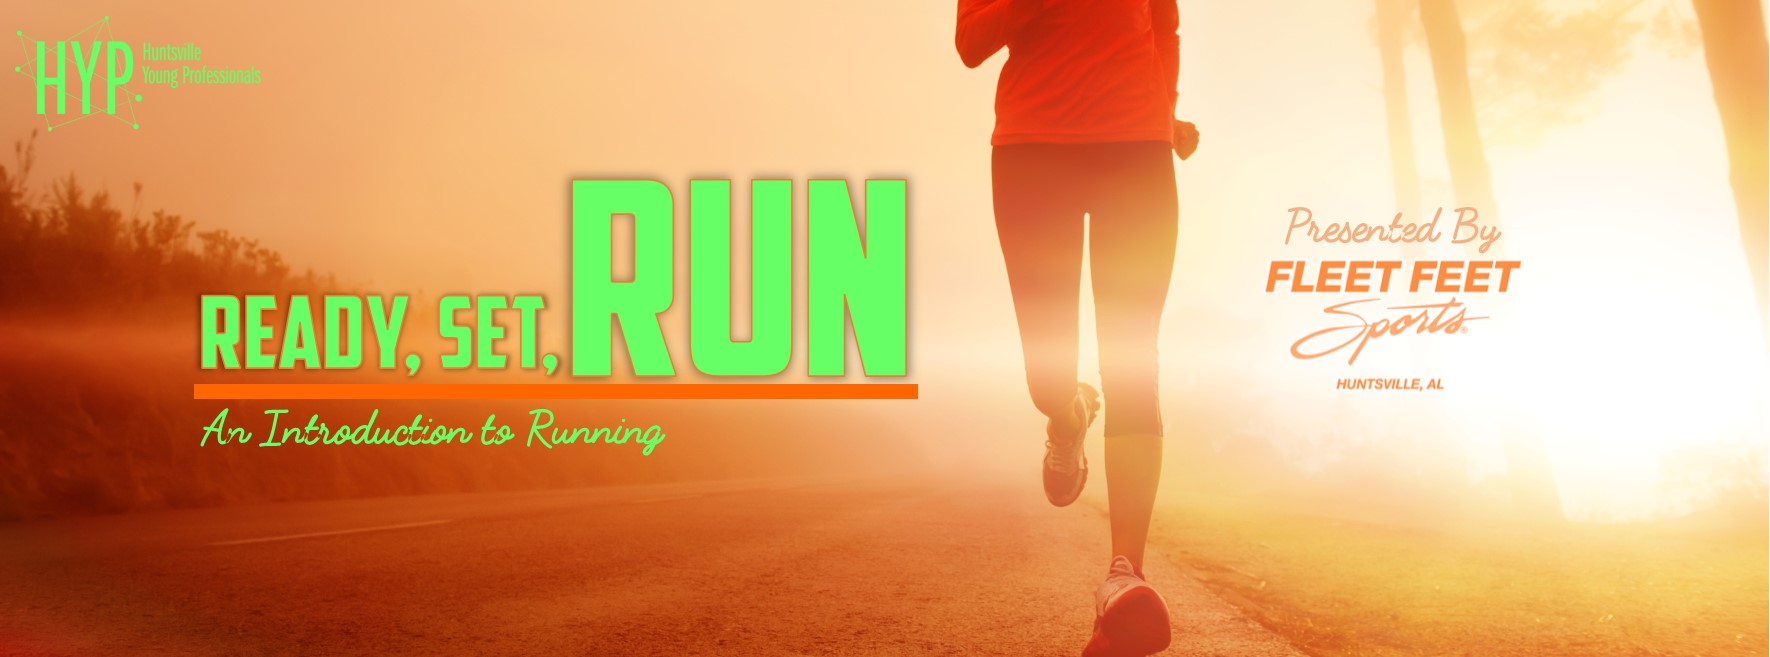 """Join the Facebook event here: https://www.facebook.com/events/497651070442793/    Join us for a fun informational session at   Fleet Feet Sports Huntsville  geared toward beginner and intermediate runners! FFS will have coaches and staff available to help you discuss proper training, good form, nutrition and running gear. Come prepared with your questions such as common injuries, recovery techniques and everything in between. If you've ever wanted to have a gait analysis and find the right pair of running shoes for you - this is the time!    """"If you run, you are a runner. It doesn't matter how fast or how far. It doesn't matter if today is your first day or if you've been running for twenty years. There is no test to pass, no license to earn, no membership card to get. You just run."""" - John Bingham"""